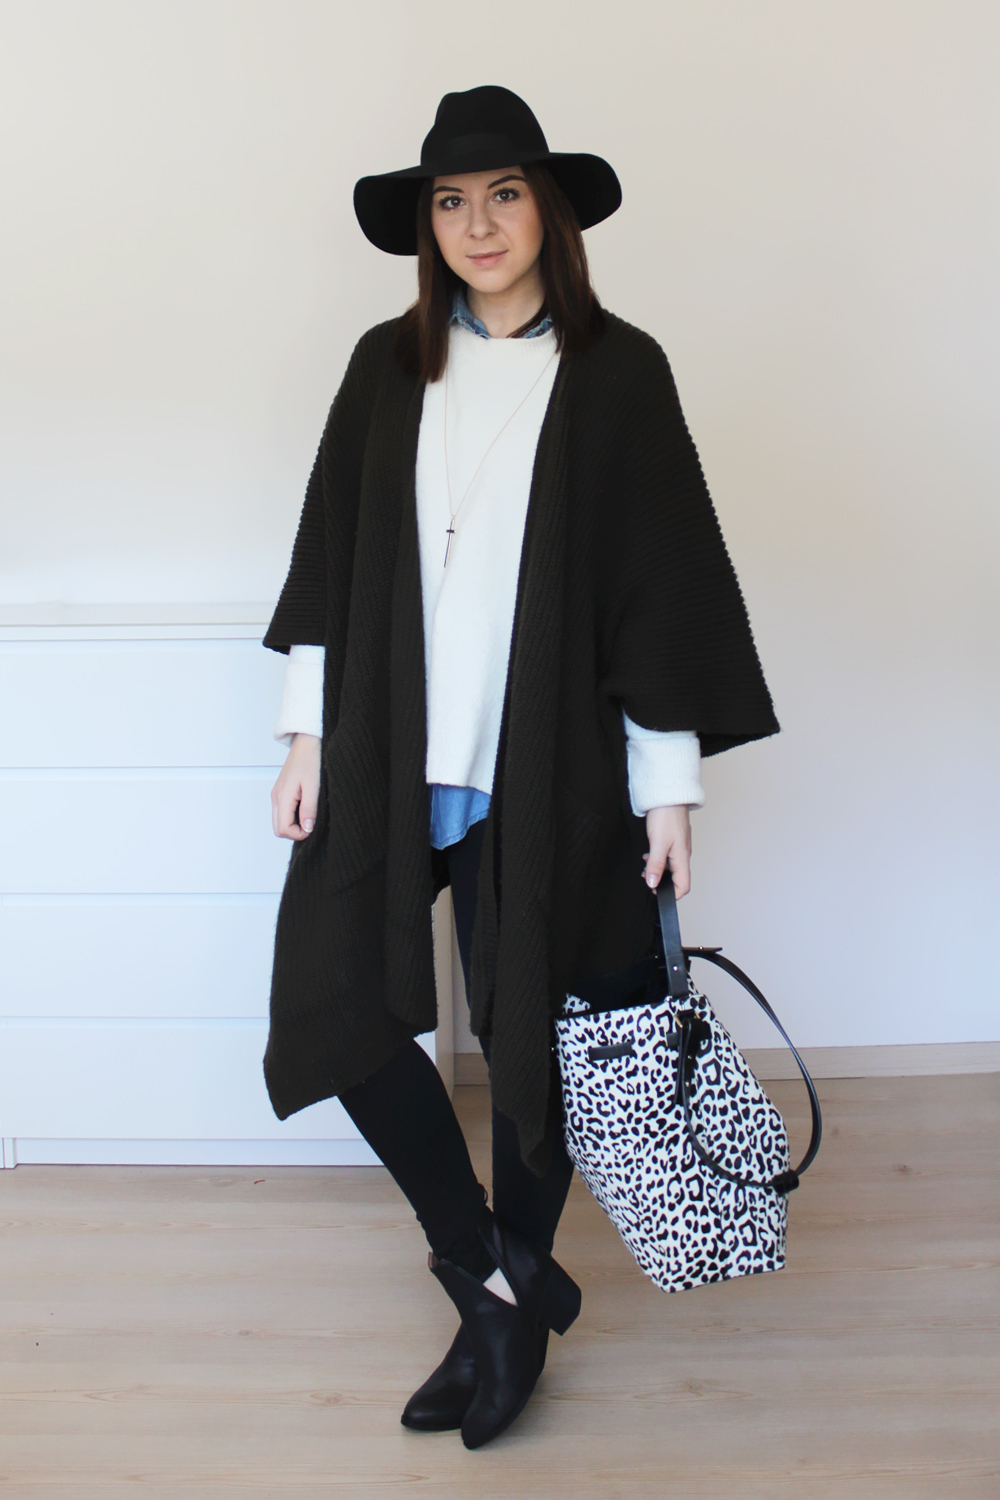 who is mocca, blogger tirol, fashionblog, weekly wardrobe review, outfit review, alltagsoutfits, everyday look, bürooutfit